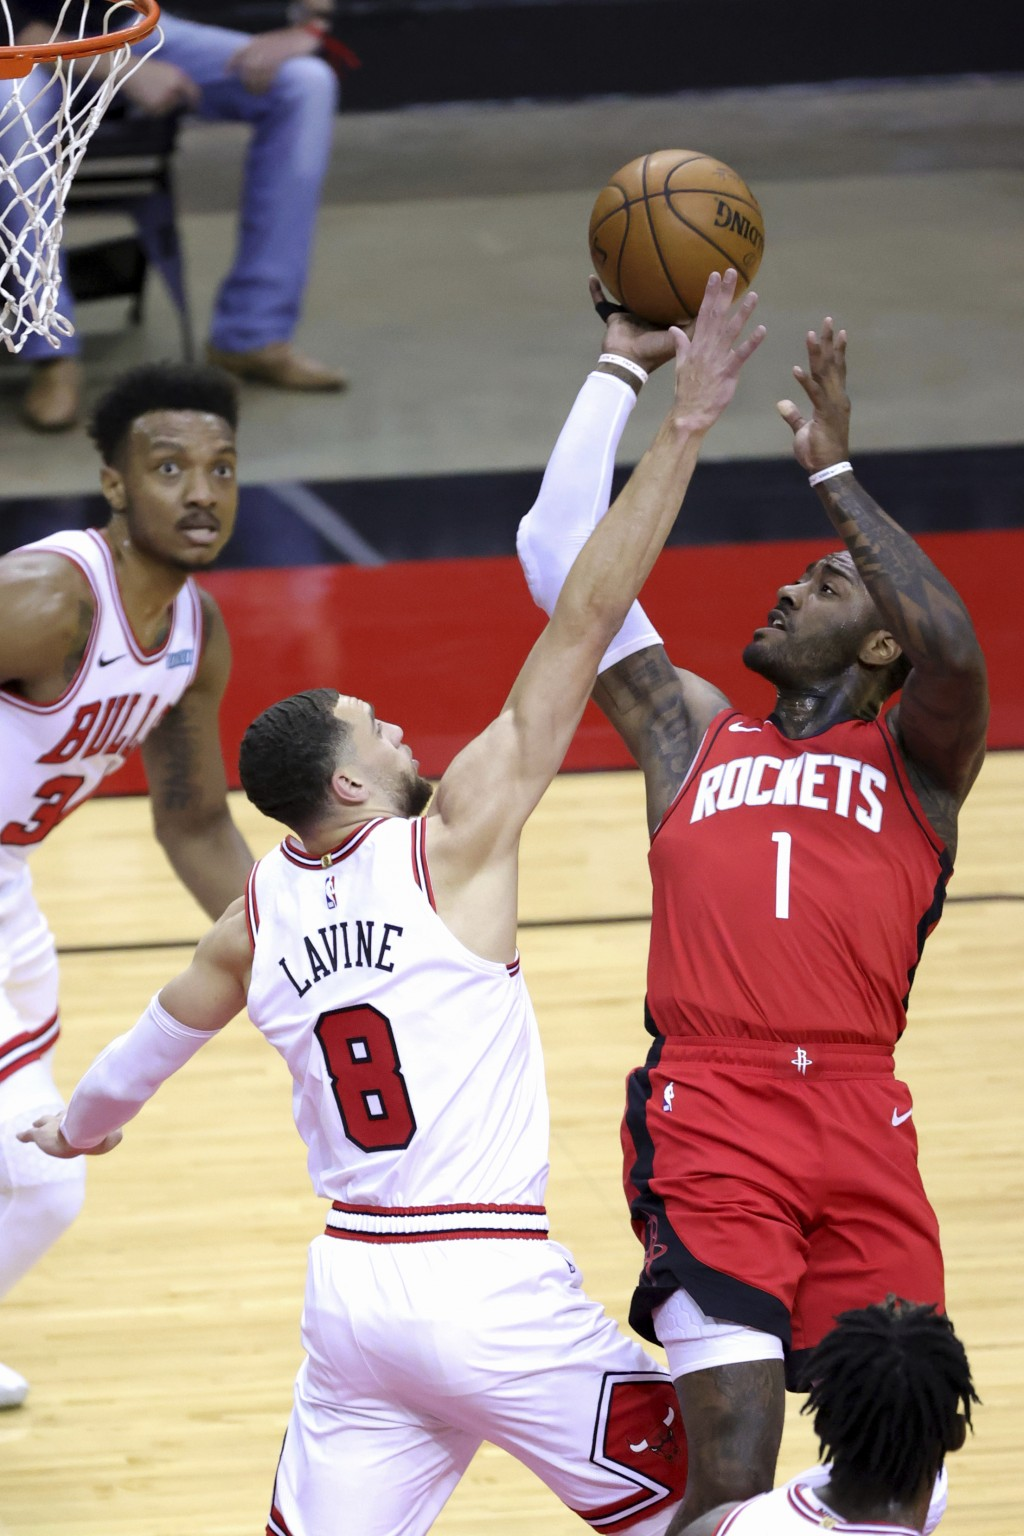 Houston Rockets' John Wall (1) puts up a jump shot against Chicago Bulls' Zach LaVine (8) during the first quarter of an NBA basketball game Monday, F...